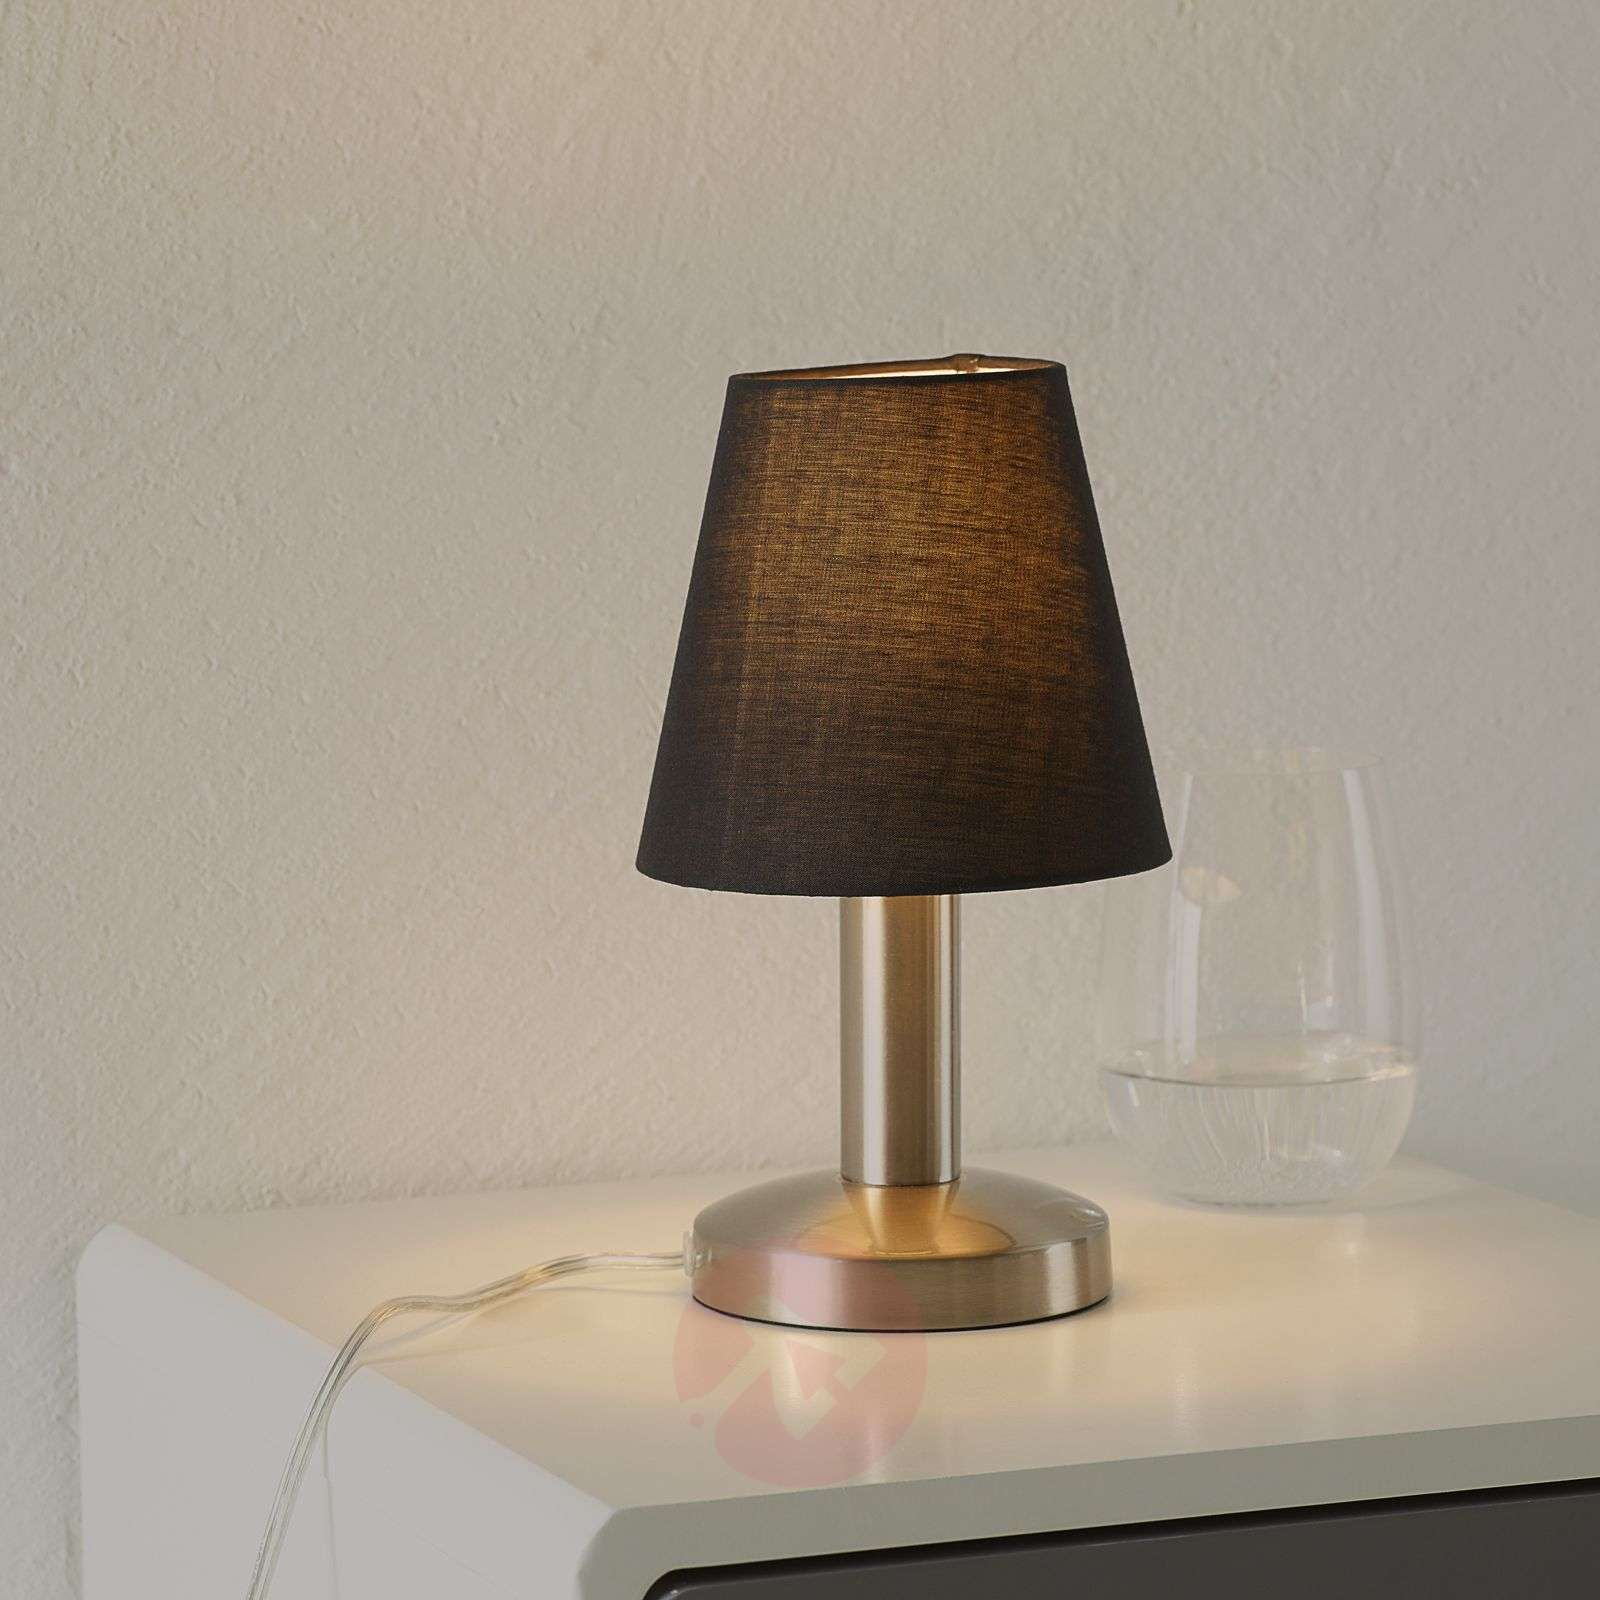 Black Merete table lamp with a touch switch-9004610-01